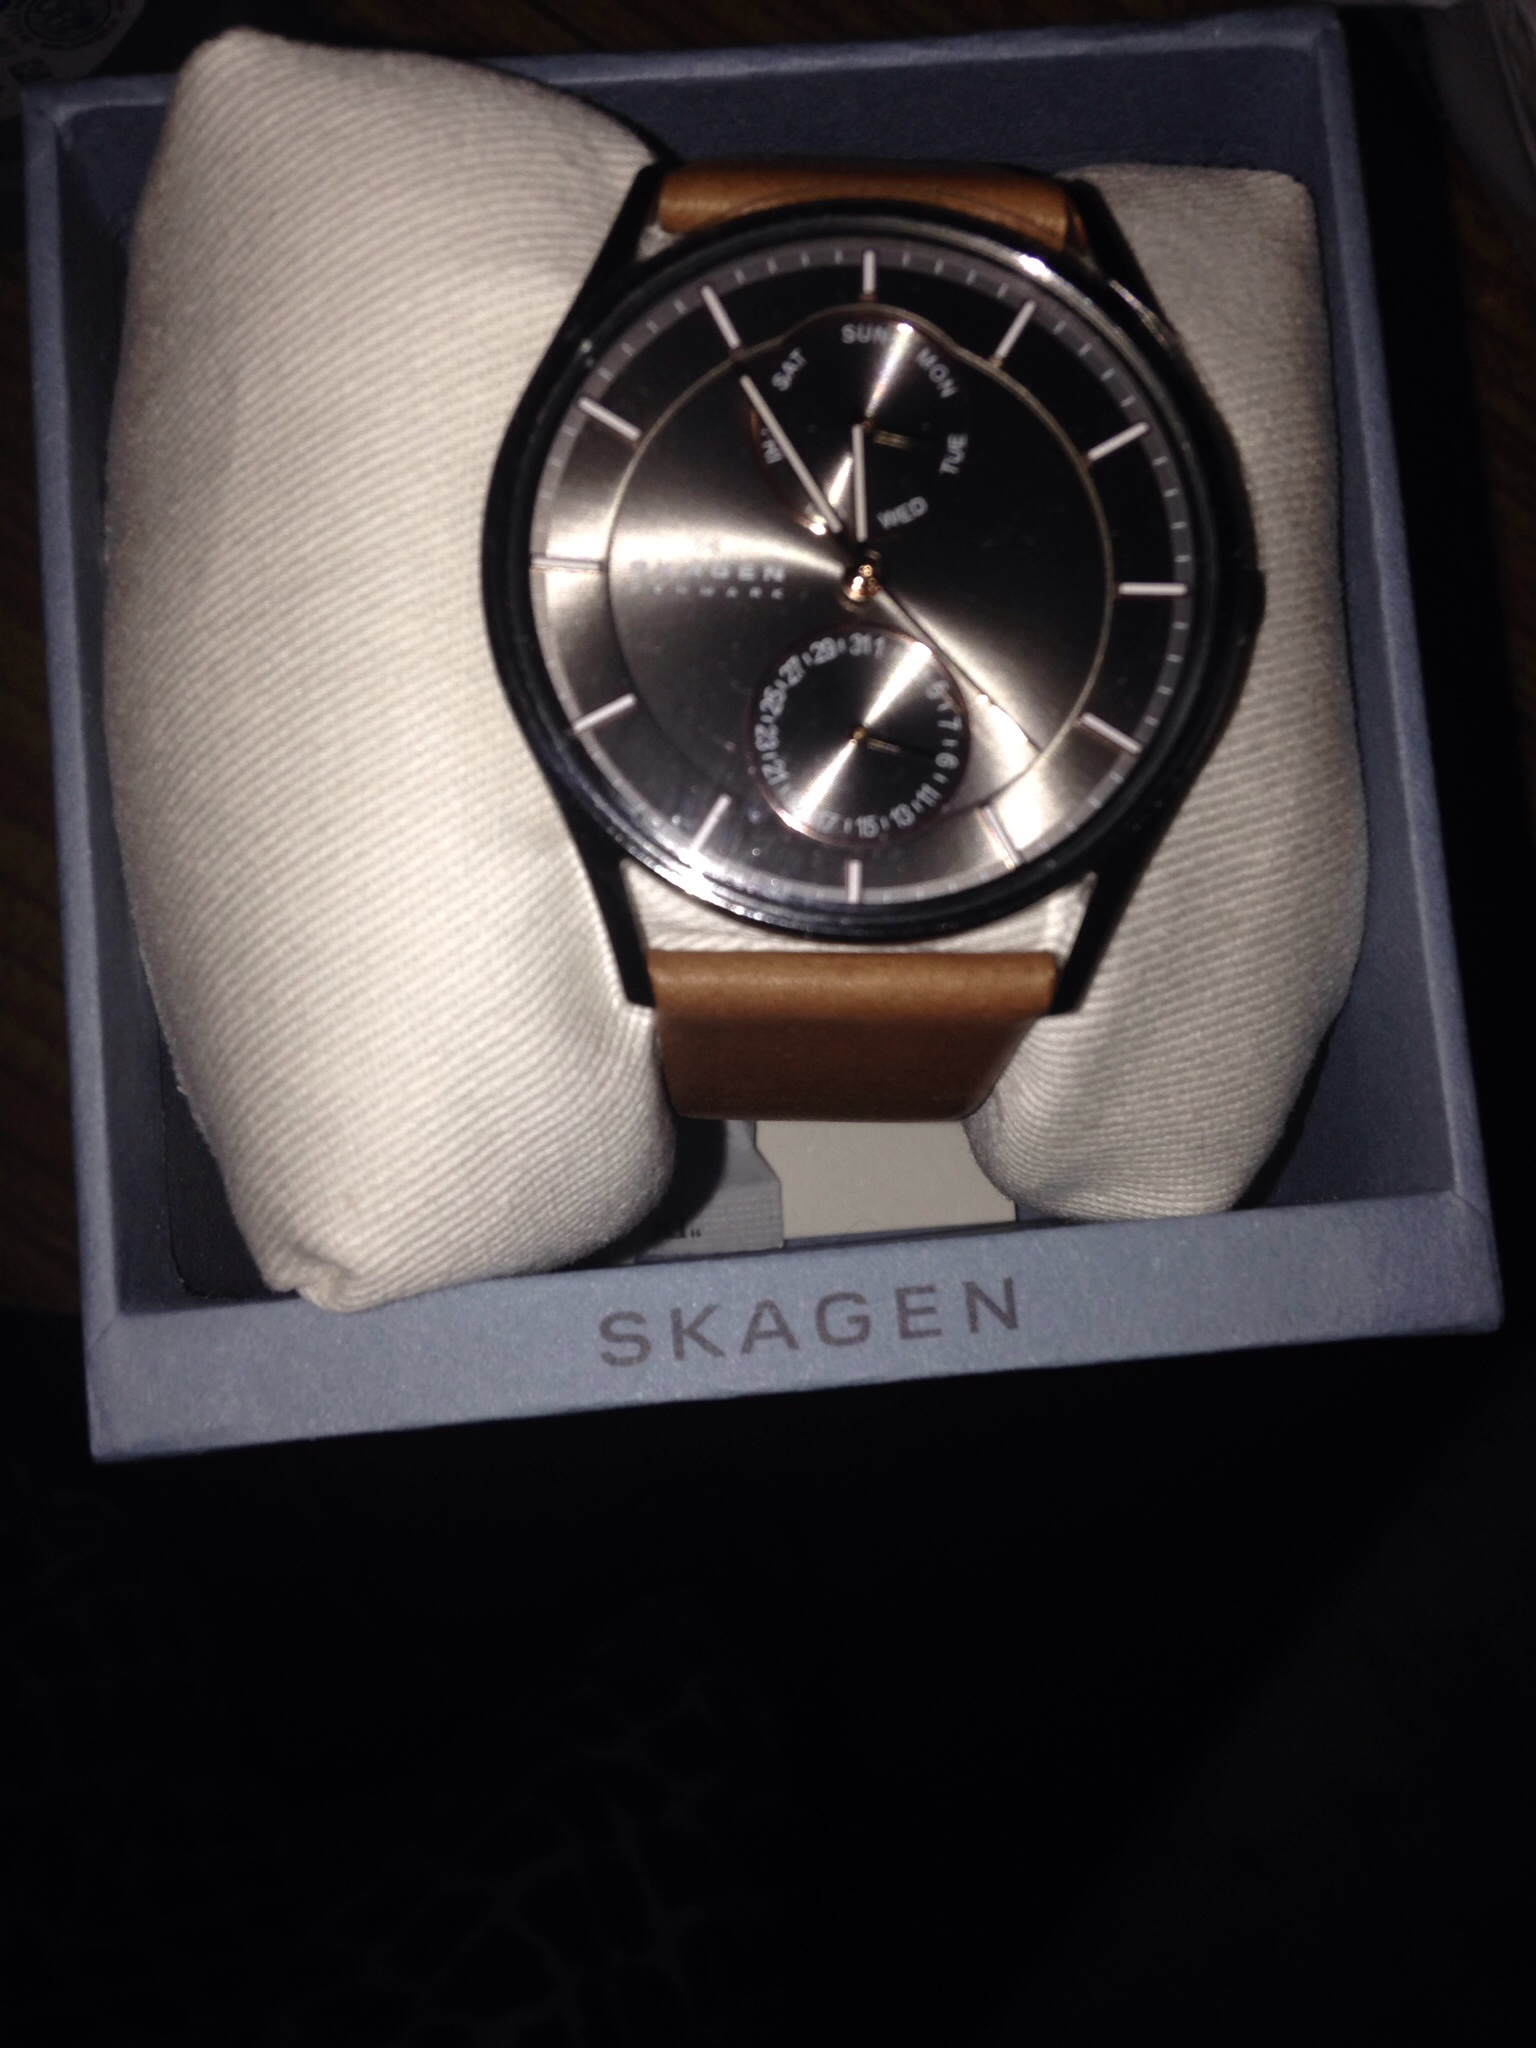 19625befc6 I have been ordered Skagen mens watch SKW6086 brown strap,black dial and  silver colour border.But I received brown colour strap and black colour  dial ...